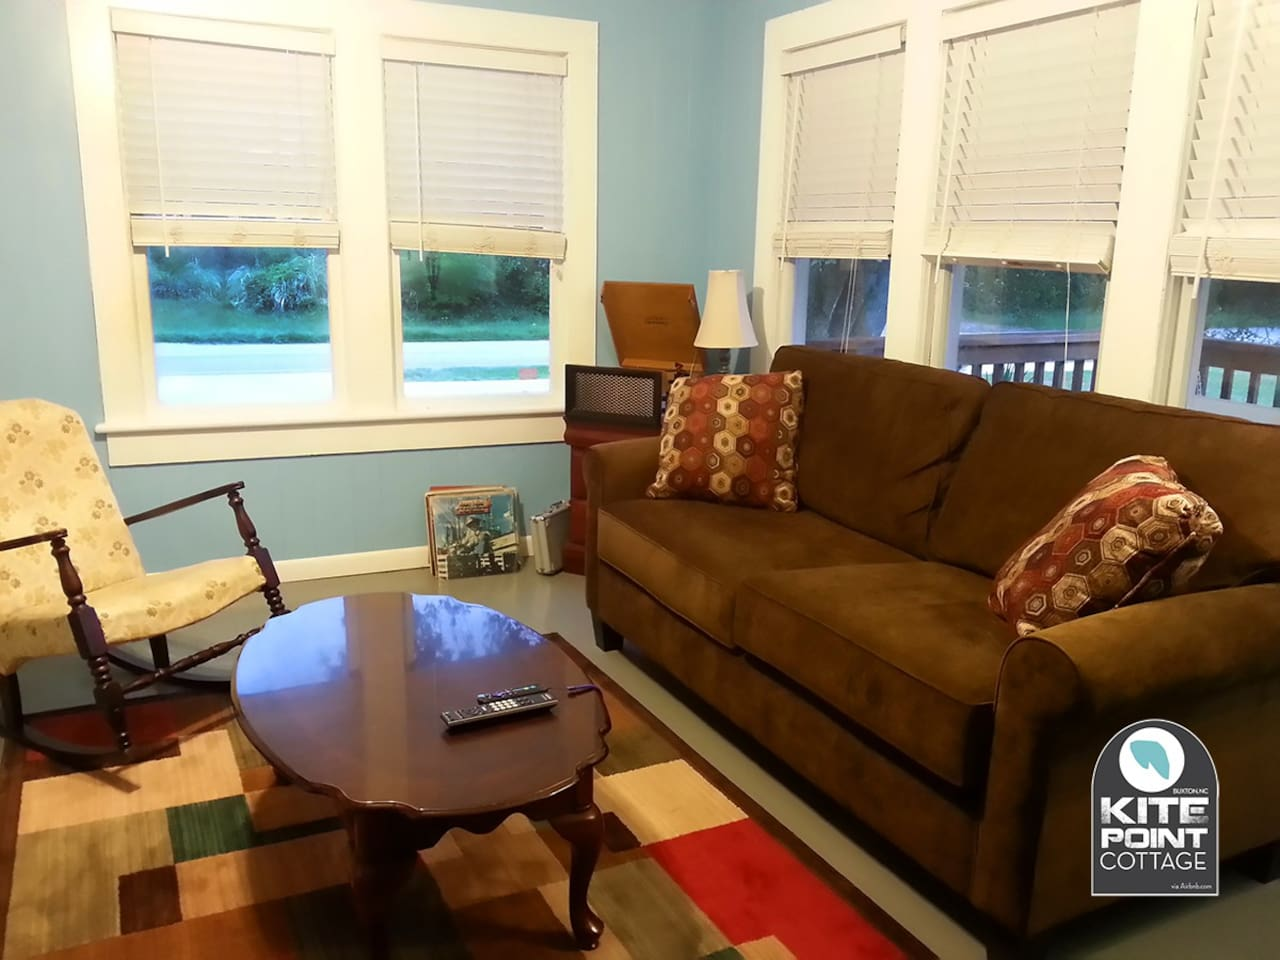 Cottage lighthouse lamp 3 colors - Kite Point Cottage 1min To Beach Houses For Rent In Buxton North Carolina United States